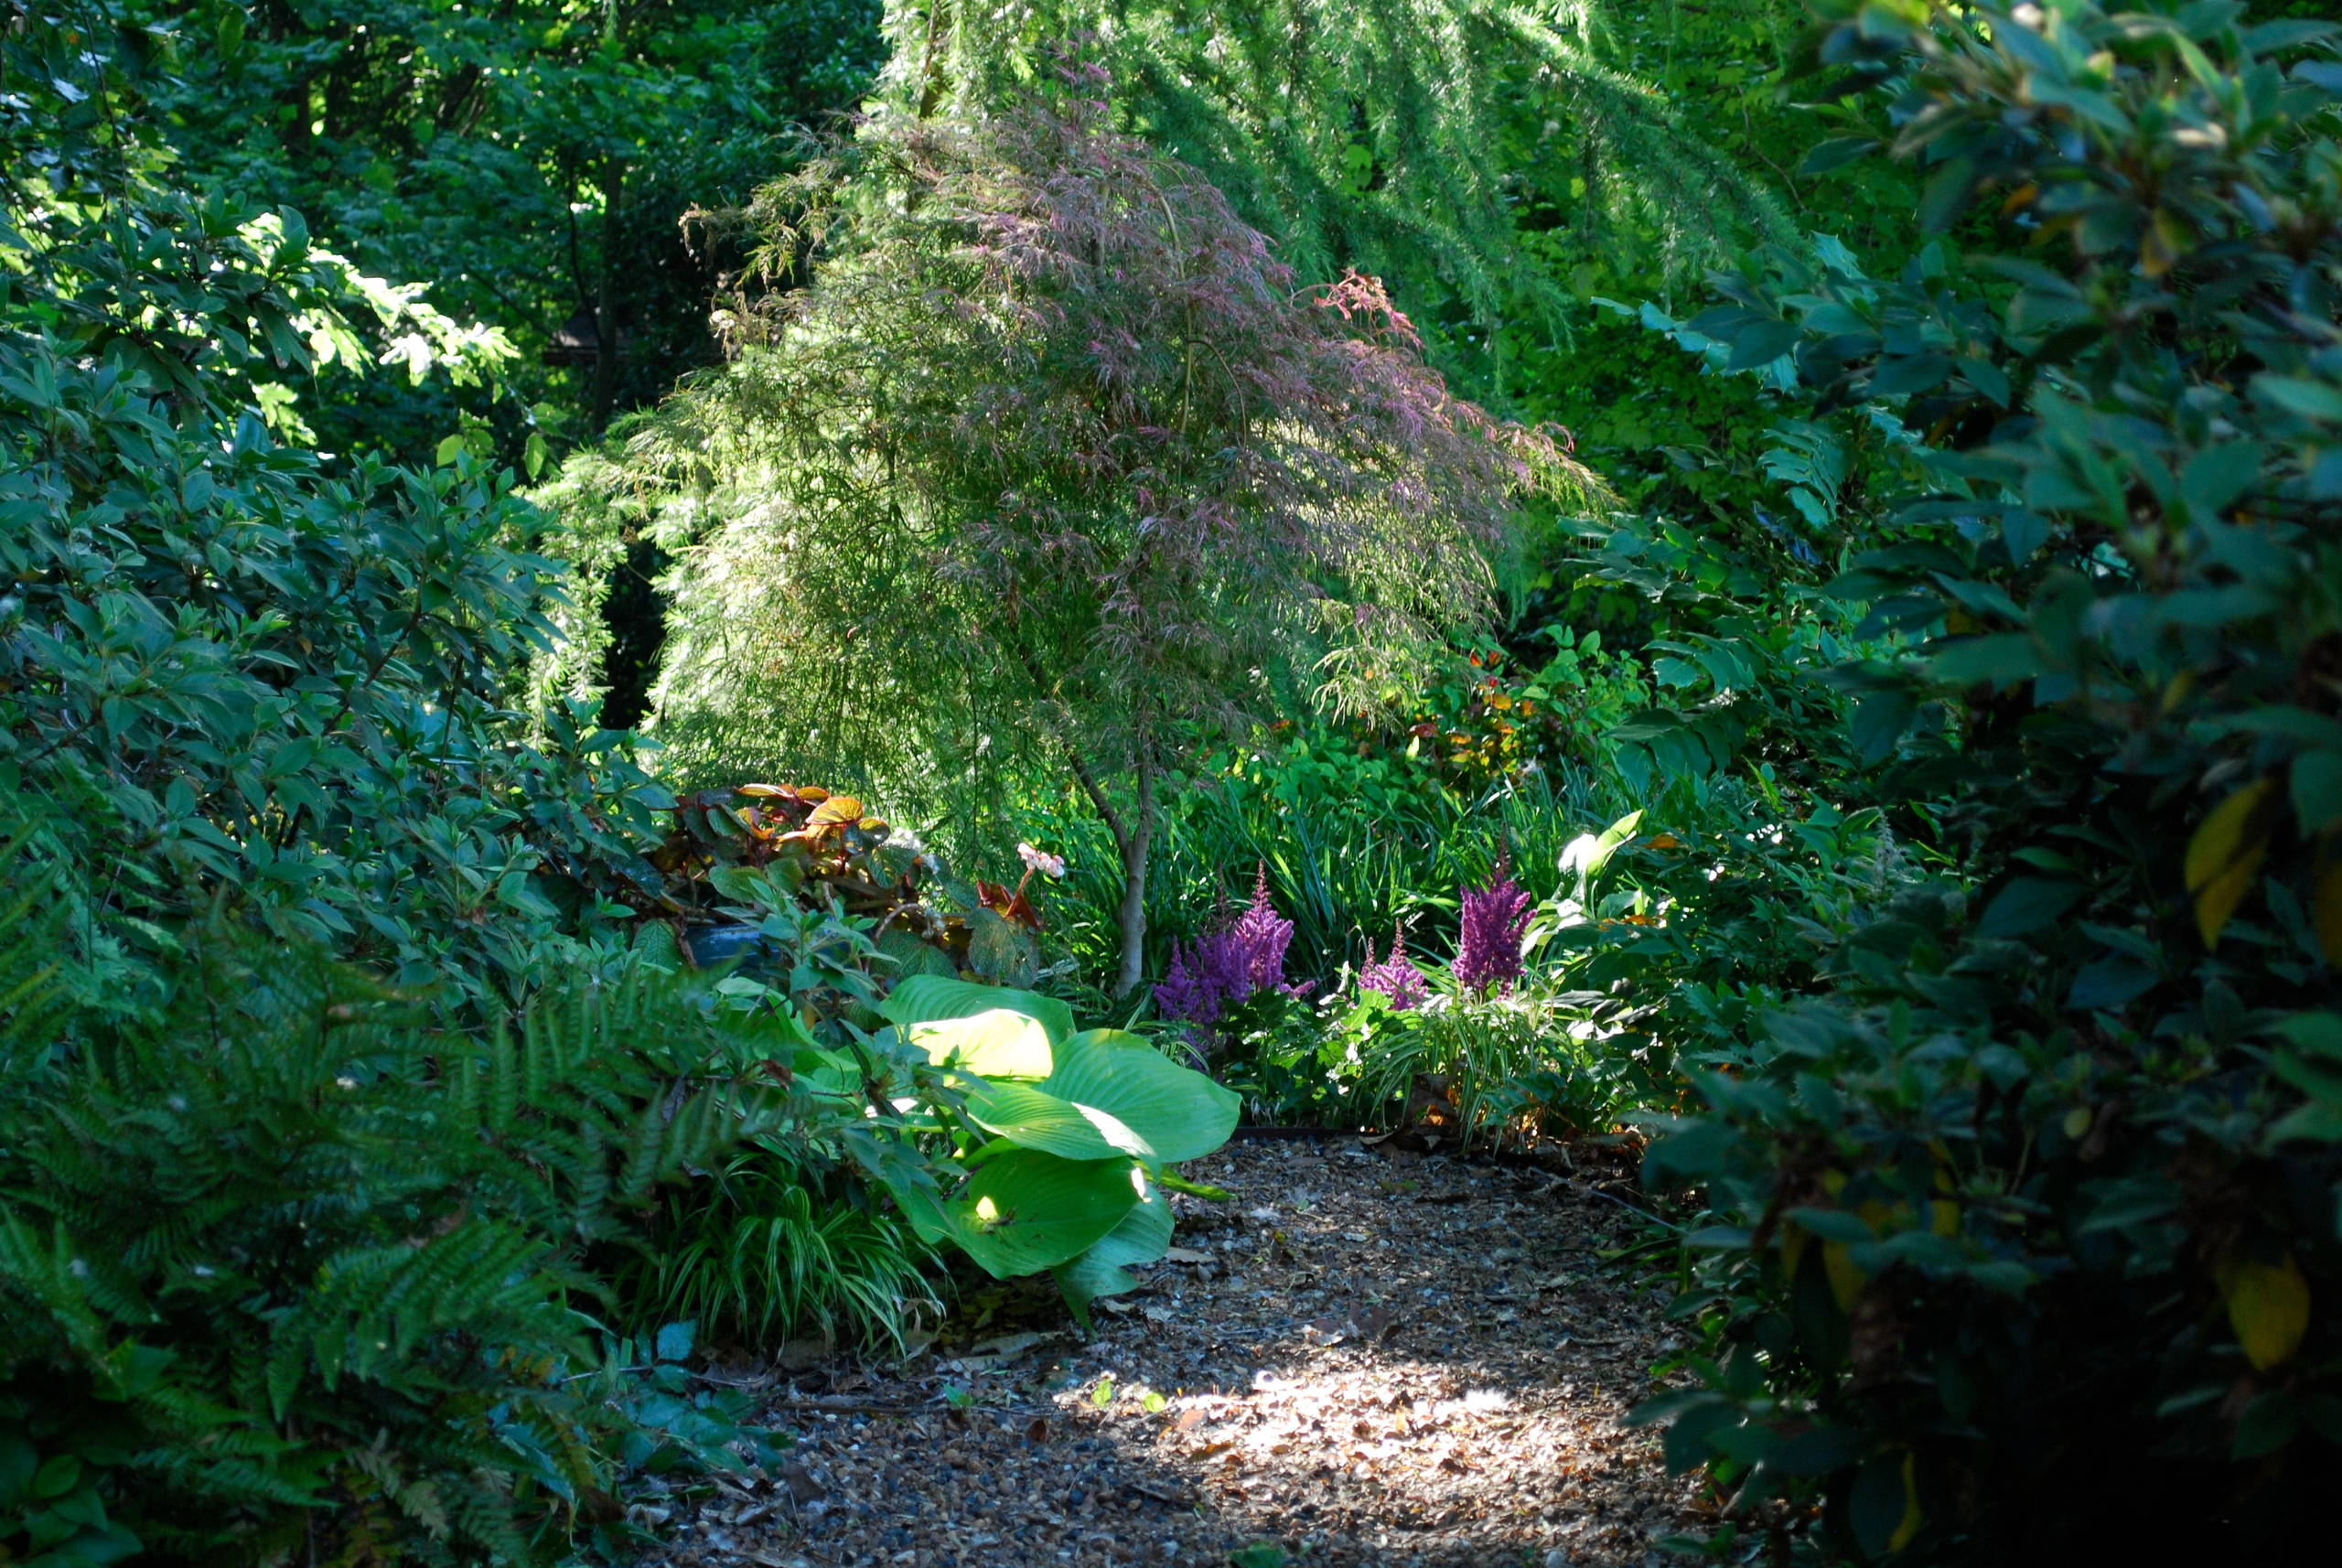 A garden can be a magical place.